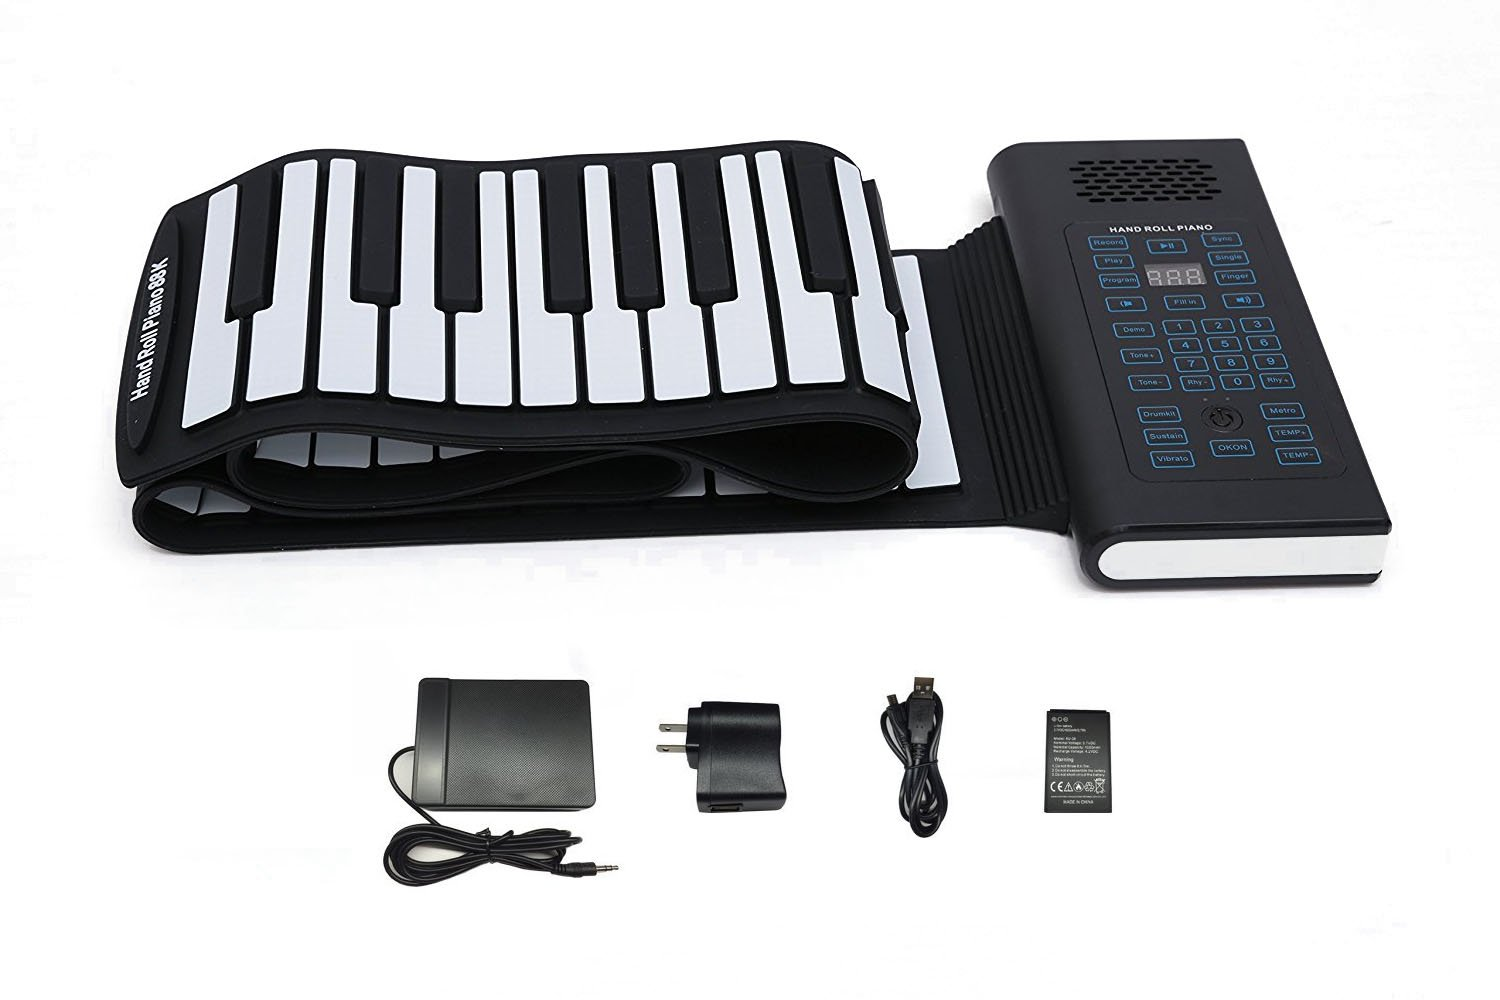 KikerTech BT 2018 Premium Grade Silicone Roll Up Piano Keyboard with Built-In Speaker, Connecting Pedal and Bluetooth (88 Keys Blue Tooth) Kiker Technology